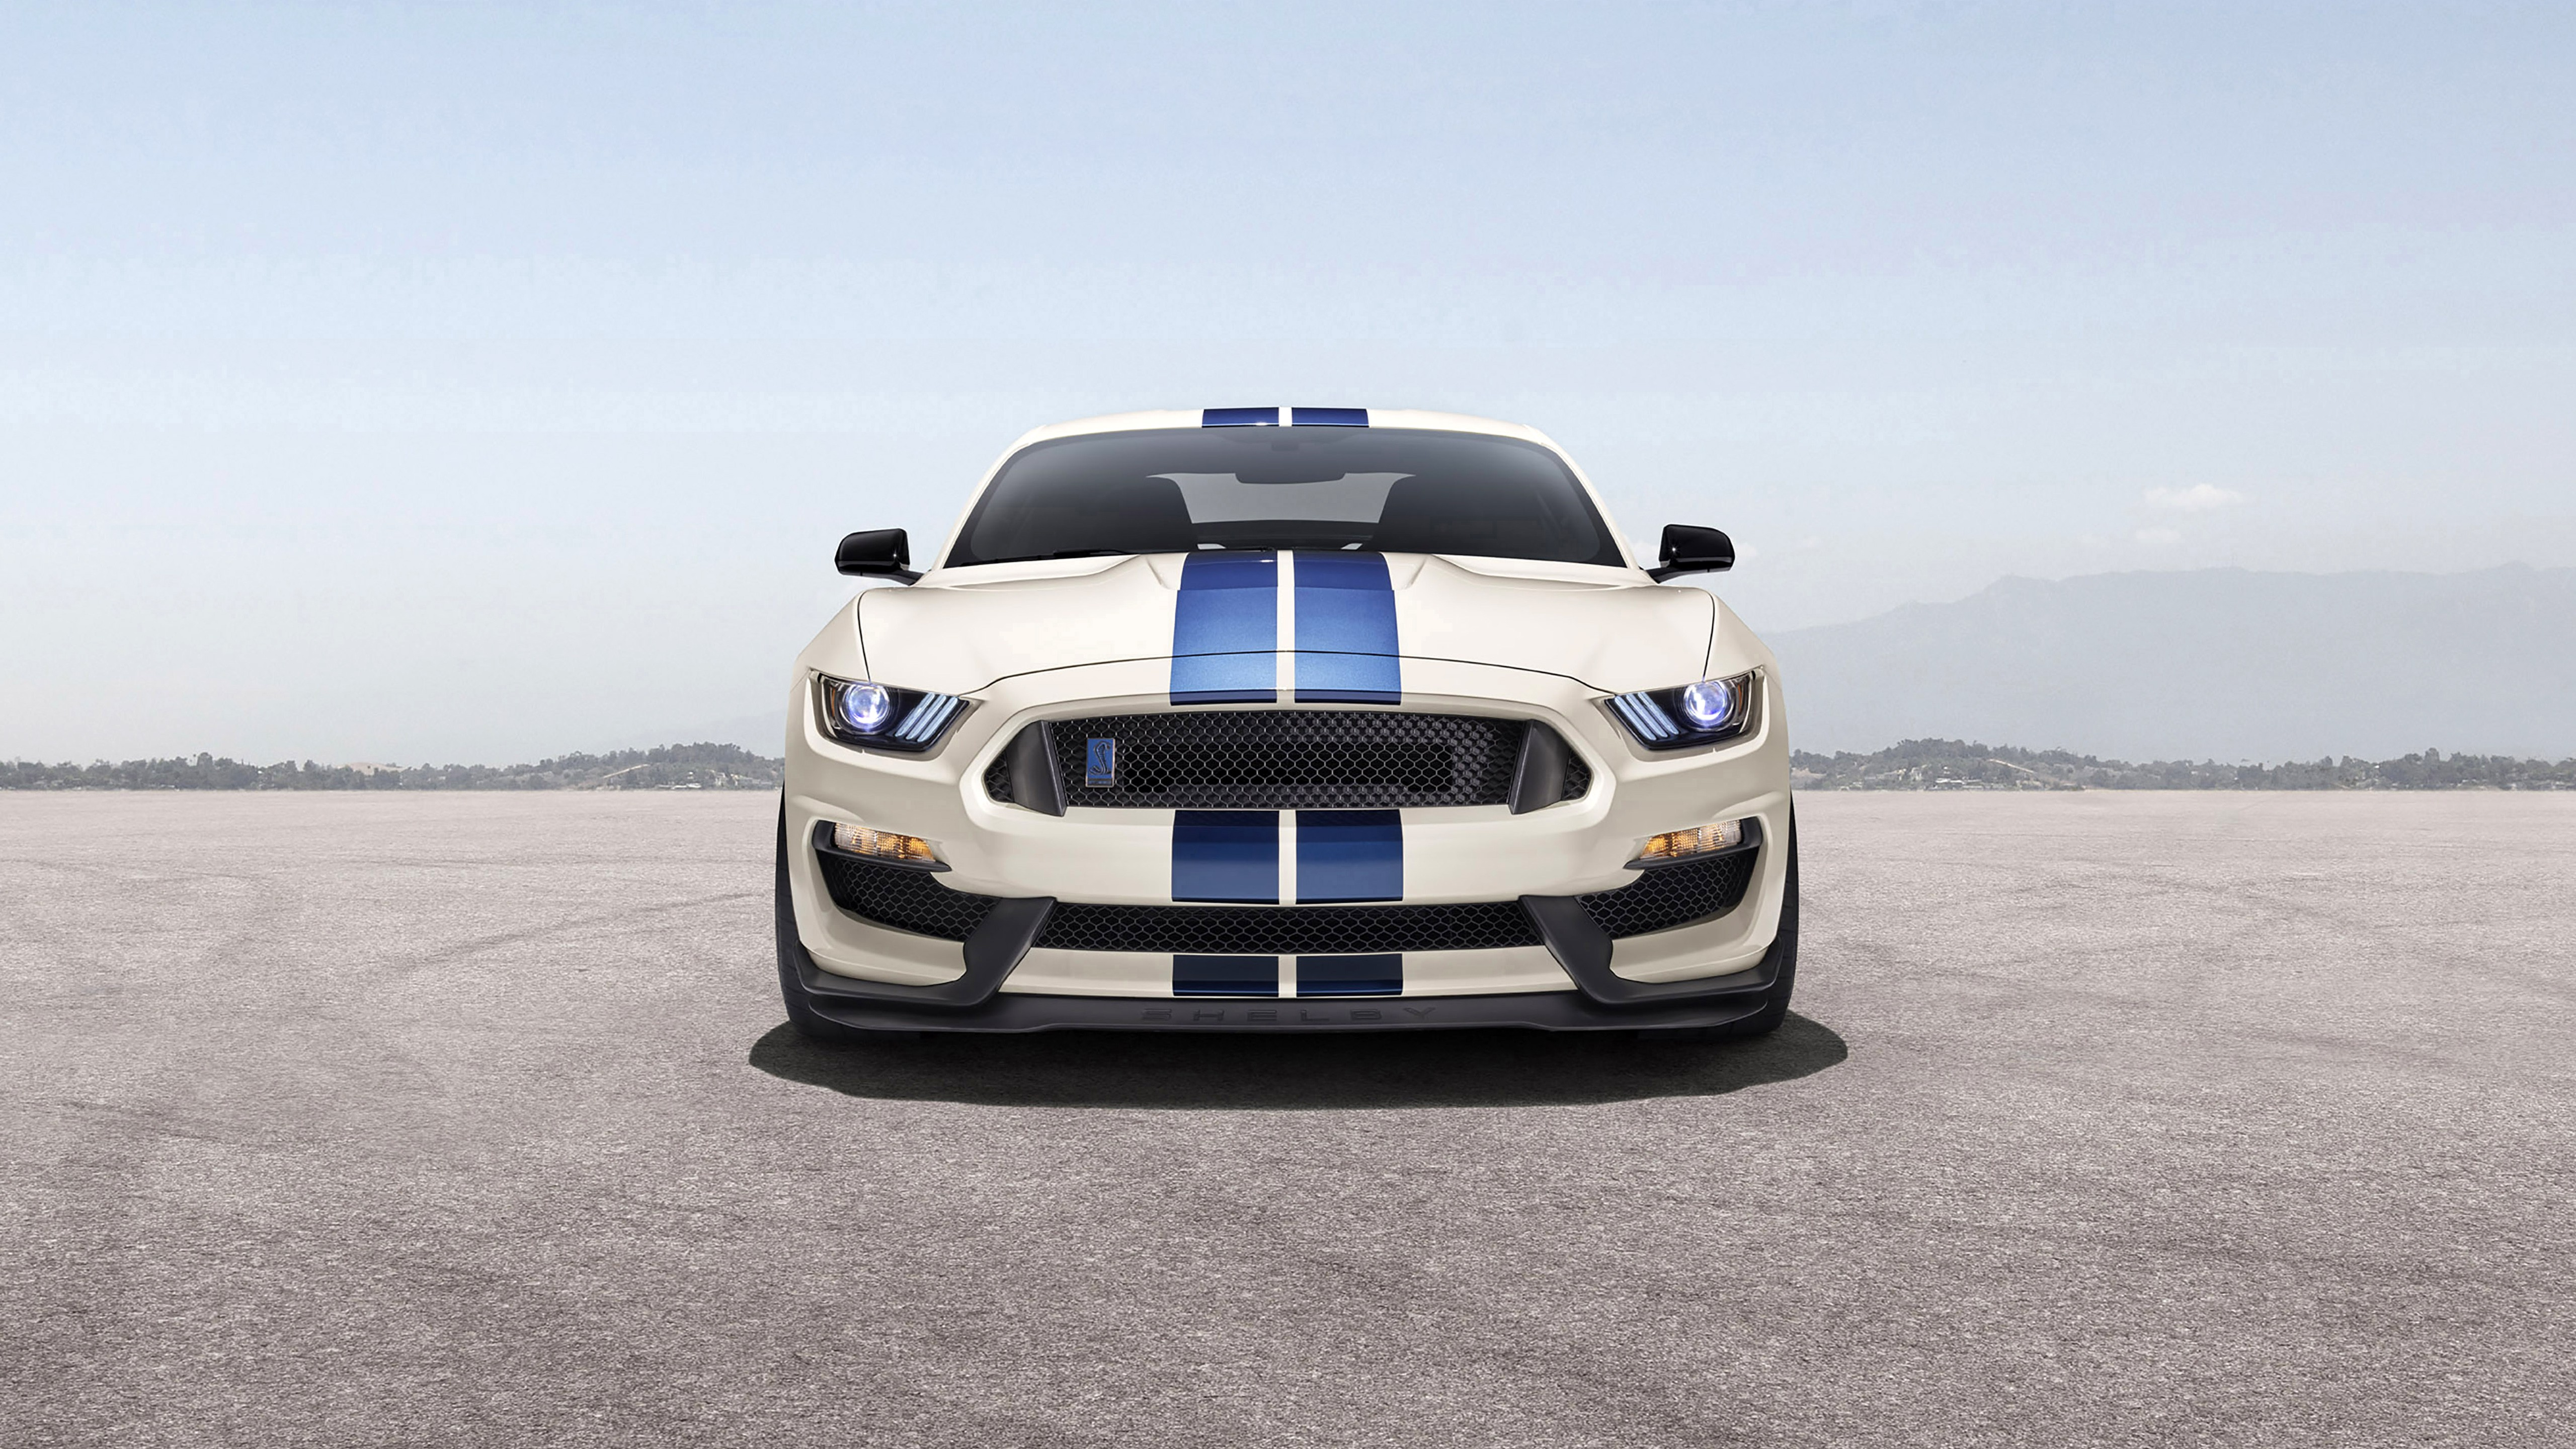 Wallpaper Shelby GT350 car, 2020 front view